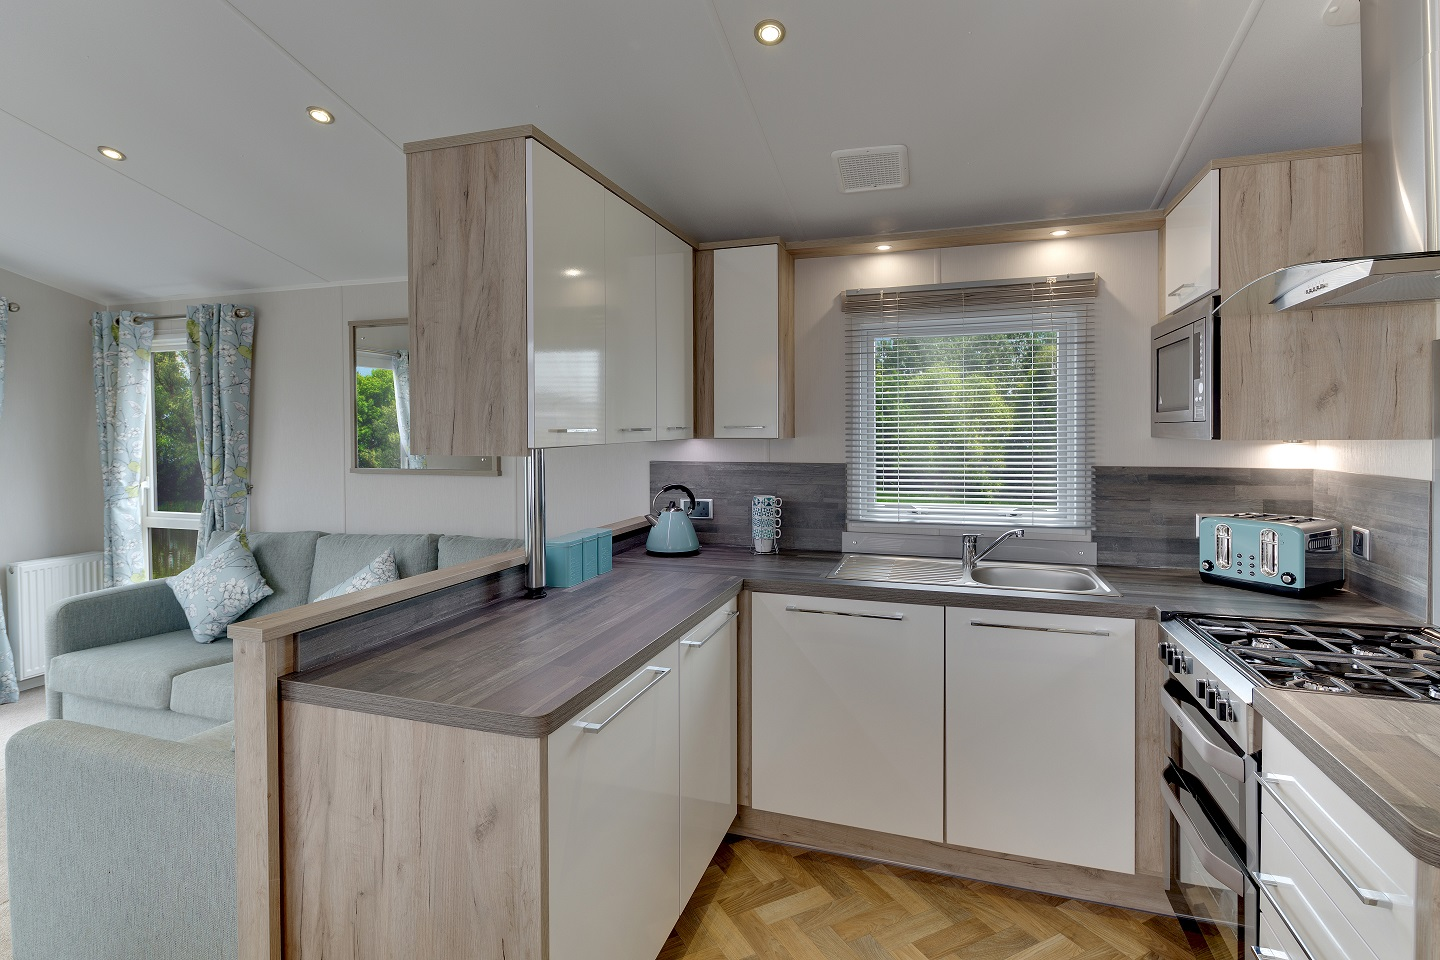 Willerby Canterbury: New Static Caravans and Holiday Homes for Sale, Langley Moor, Durham Large Image 3